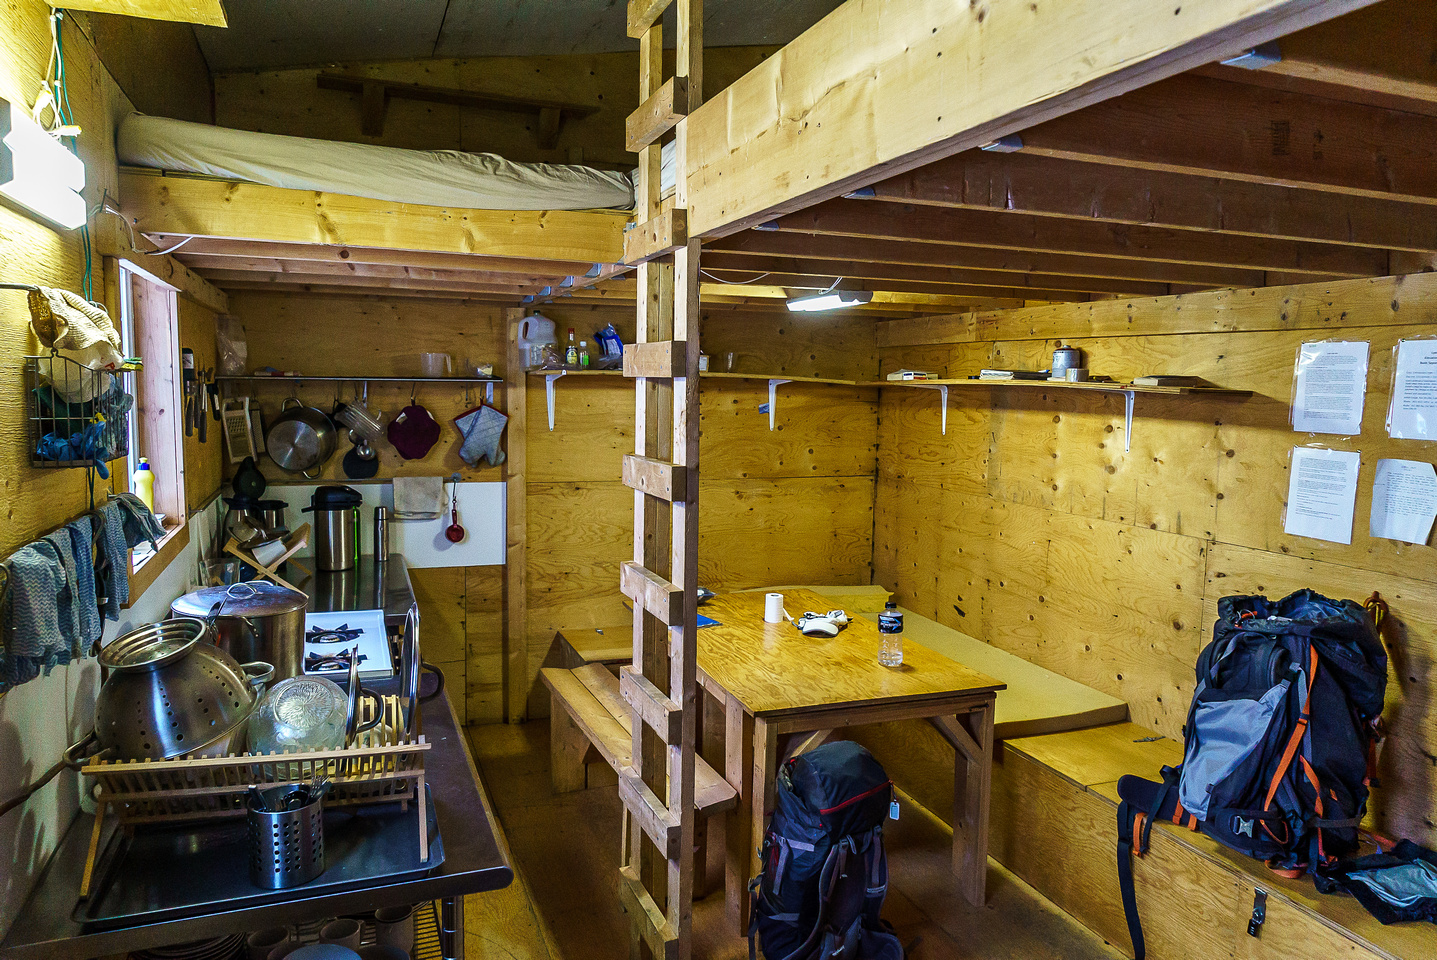 The hut is neat and organized. 12 people would be tight though!